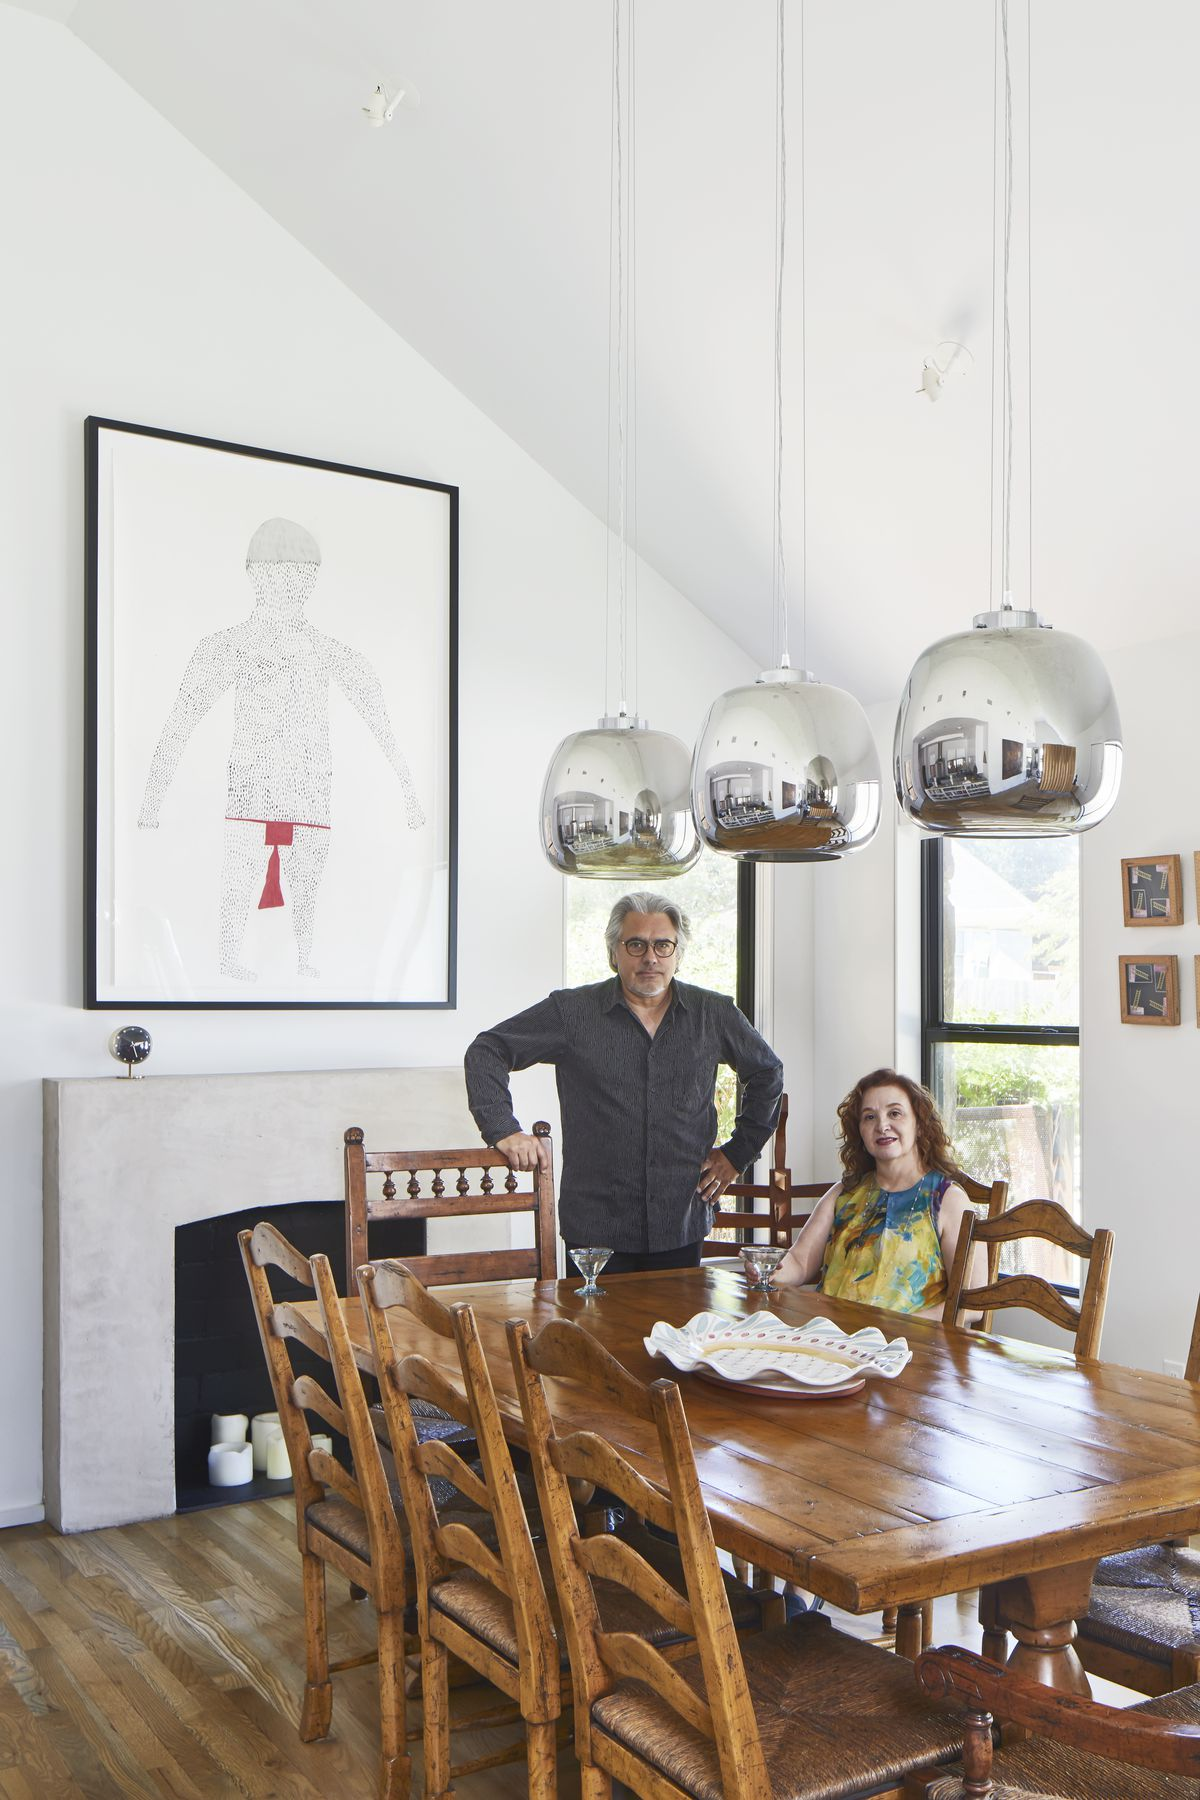 The homeowners, a man and a woman, are in the dining area of their home. The woman is sitting at a large wooden table and then man is standing next to her. They are both looking at the camera. There are multiple light fixtures above the table.